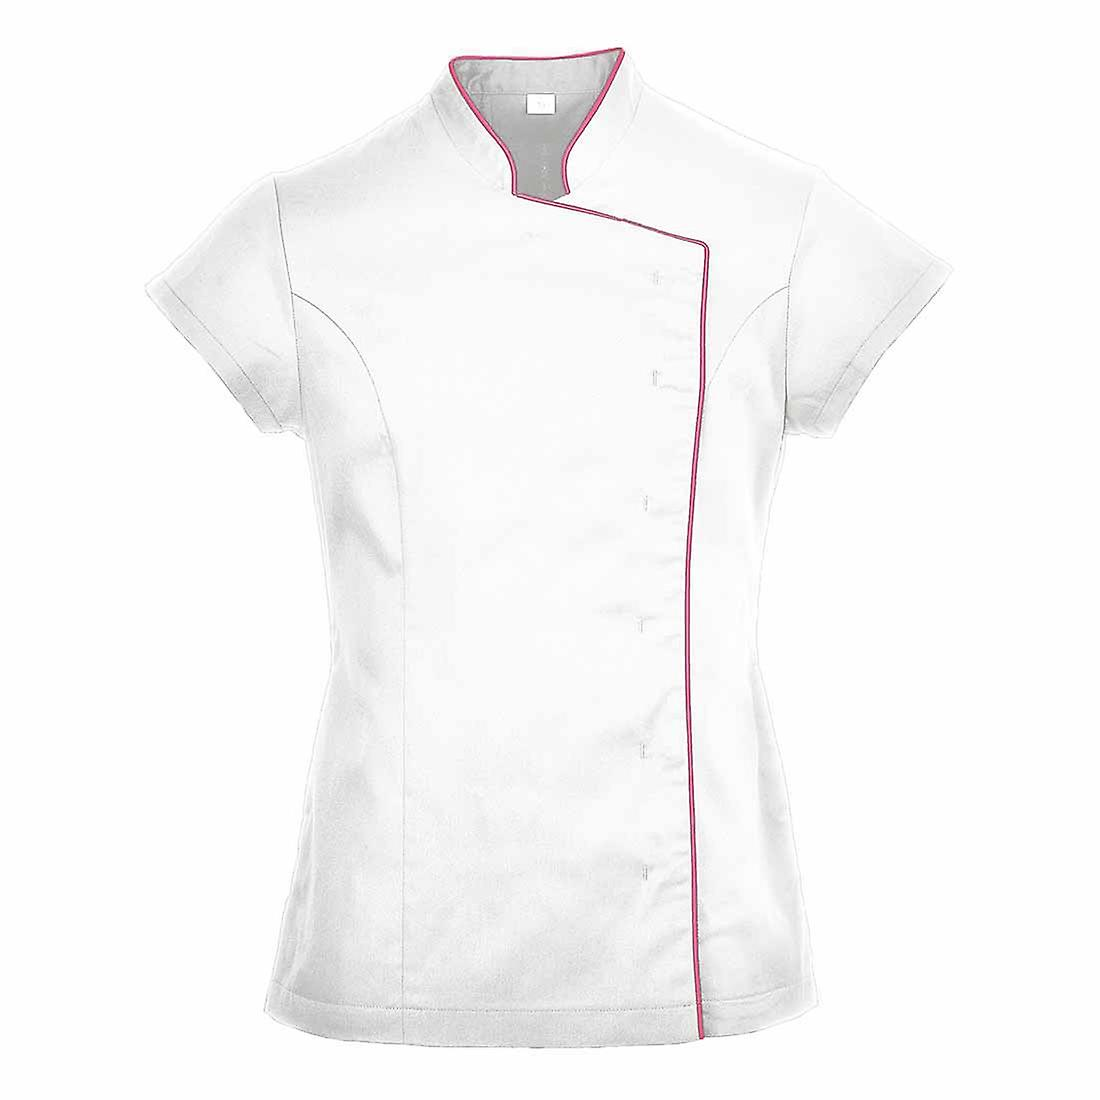 Portwest - Wrap Heath Care Workwear Wrap Over Tunic Jacket Top